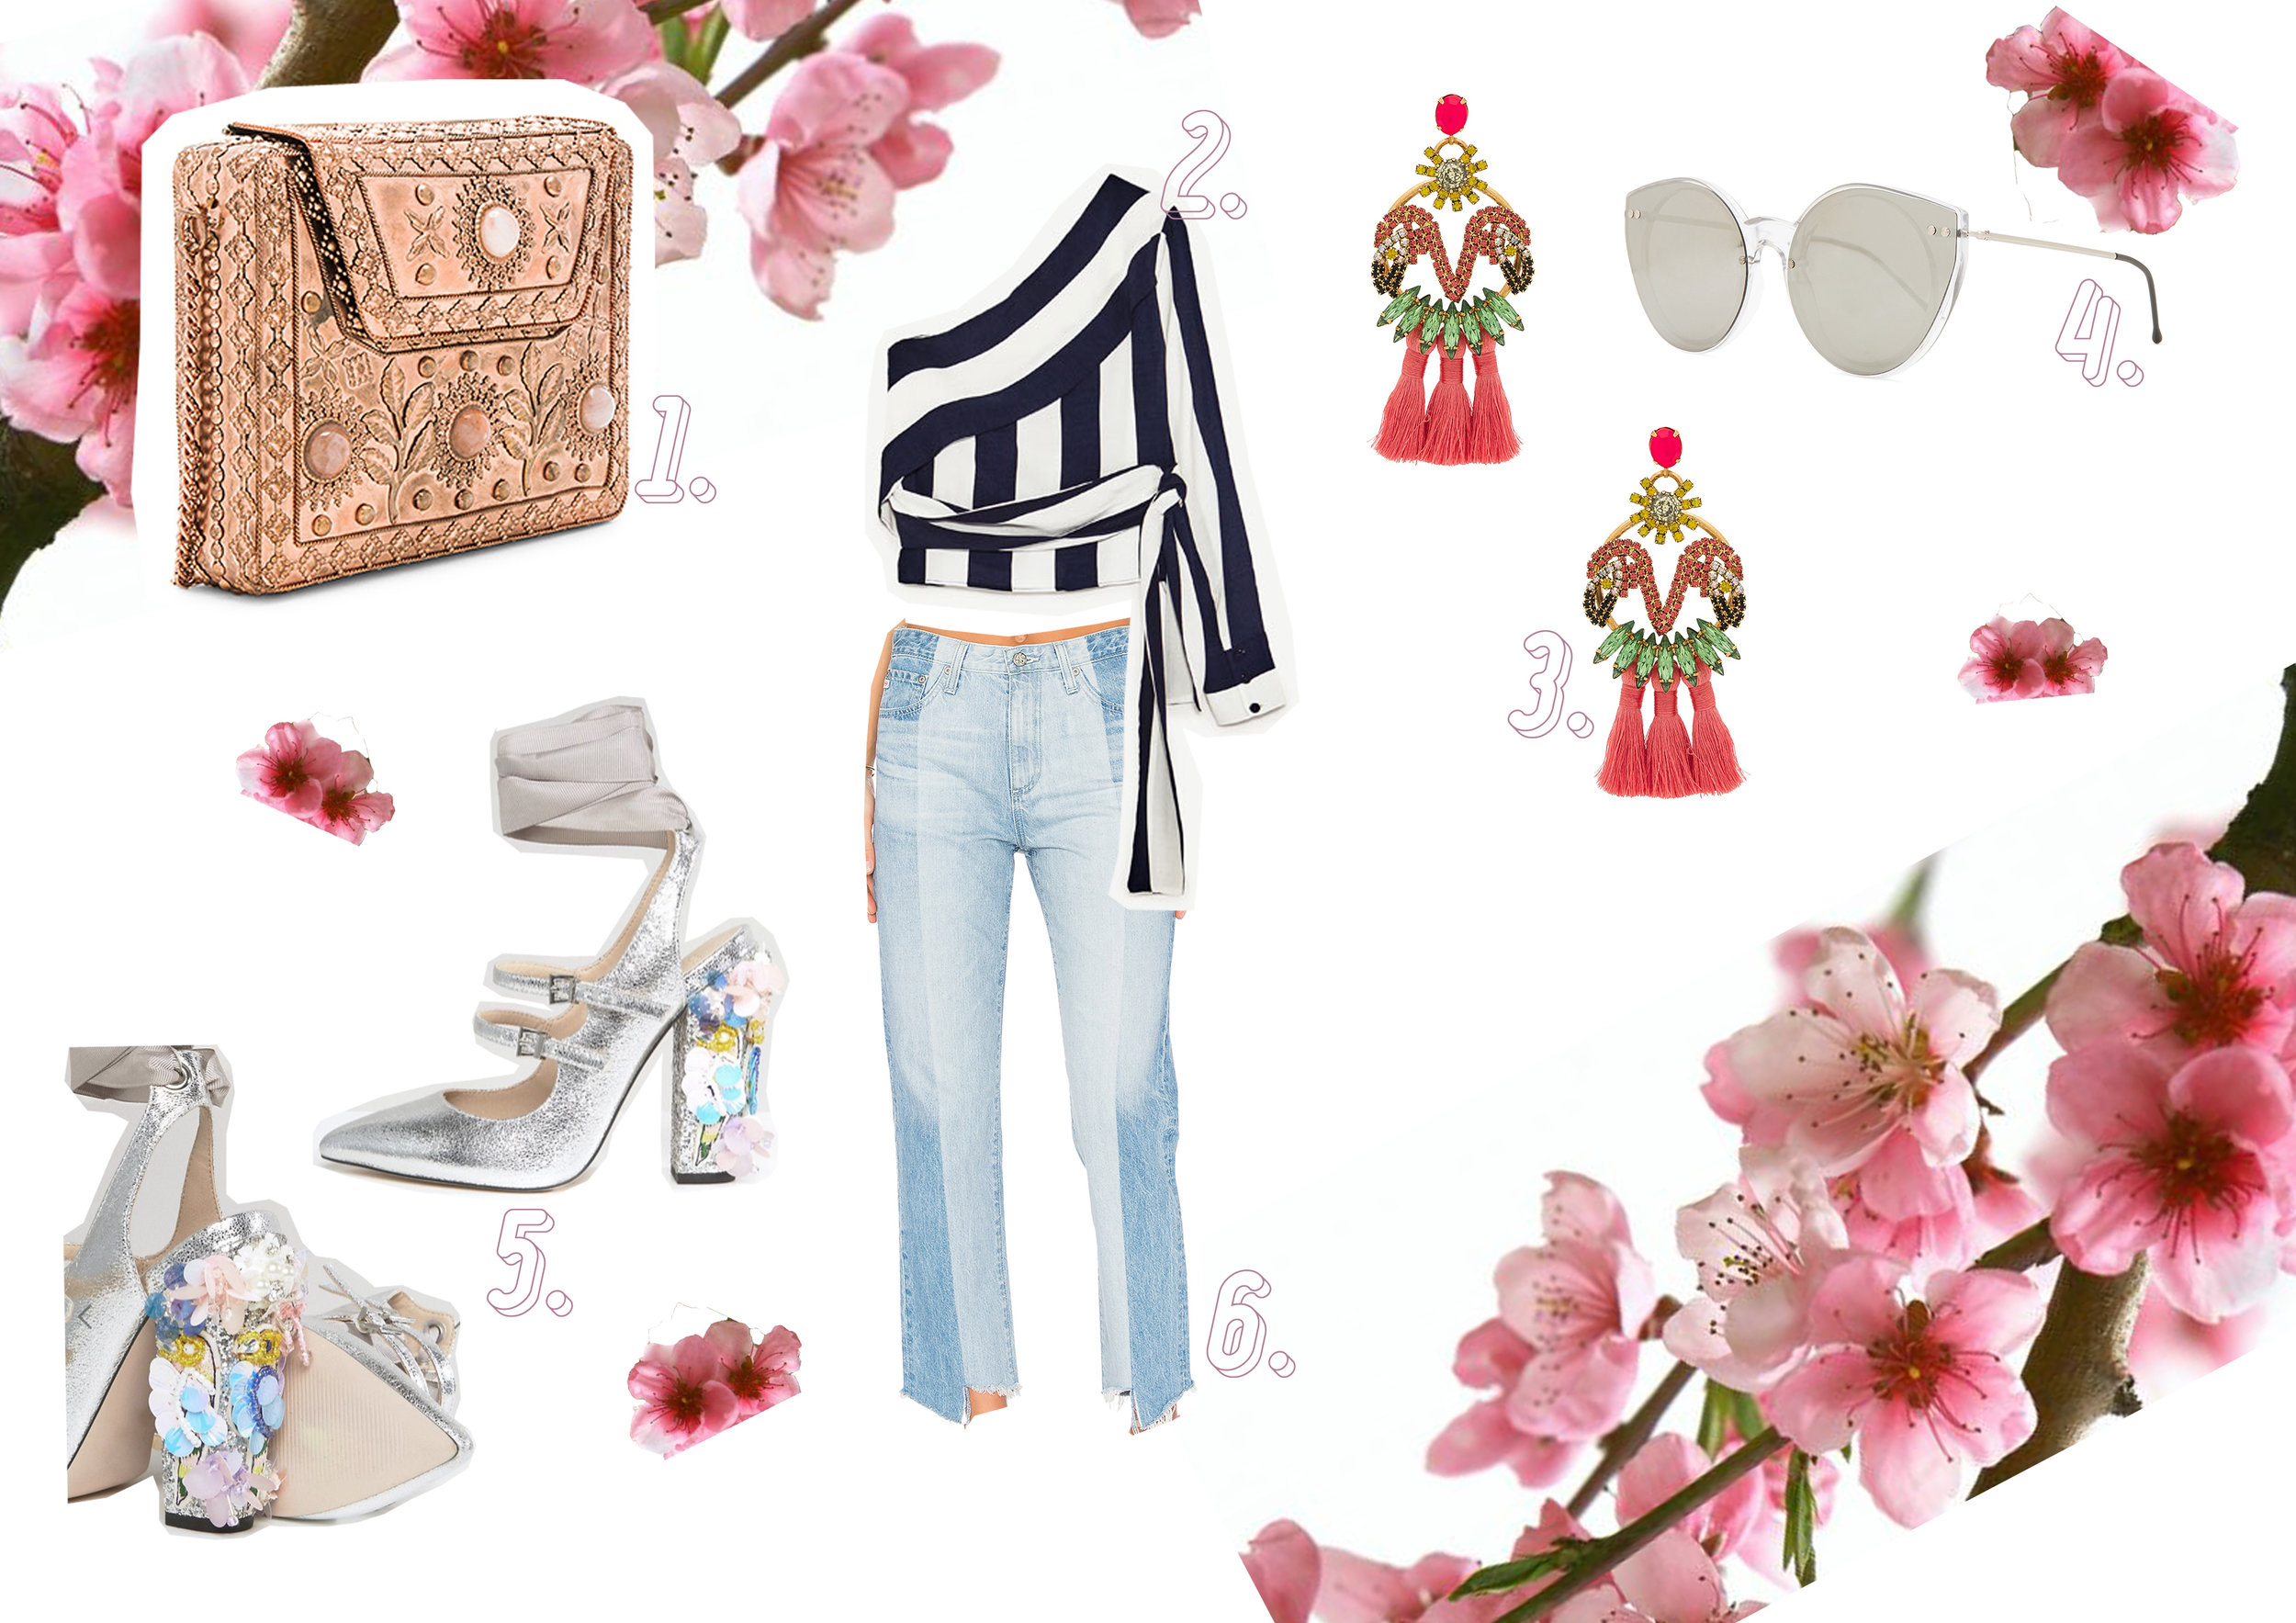 1. Embellished bag  here  // 2. Striped top  here  // 3. Flamenco ear rings  here  // 4. Silver sunglasses  here  // 5. Silver shoes  here  // 6. Denim jeans  here .